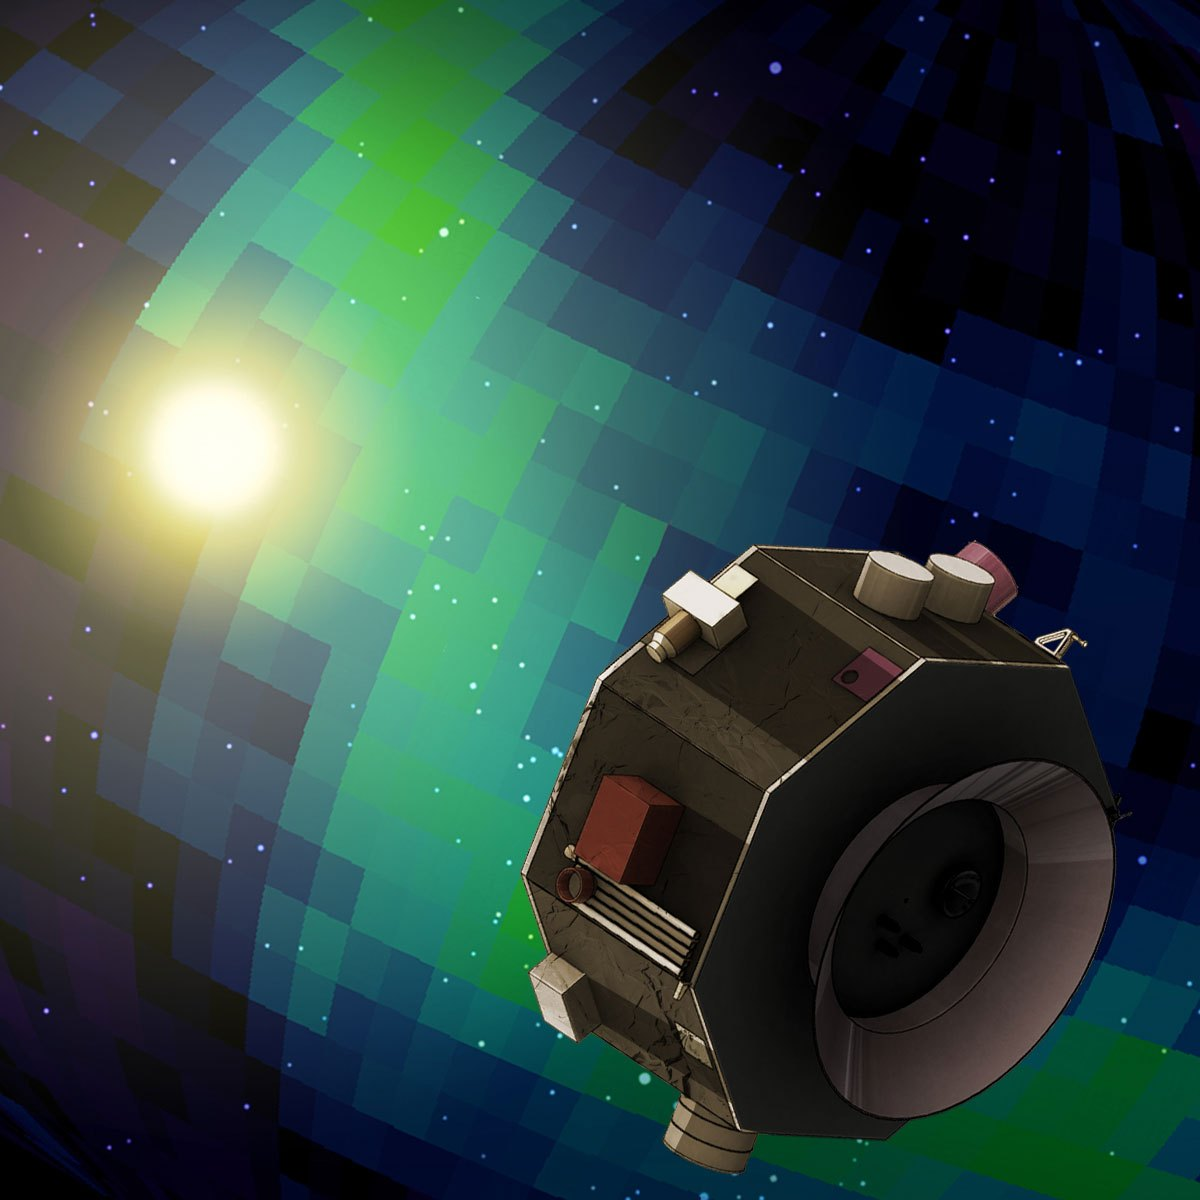 Interstellar_Mapping_and_Acceleration_Probe